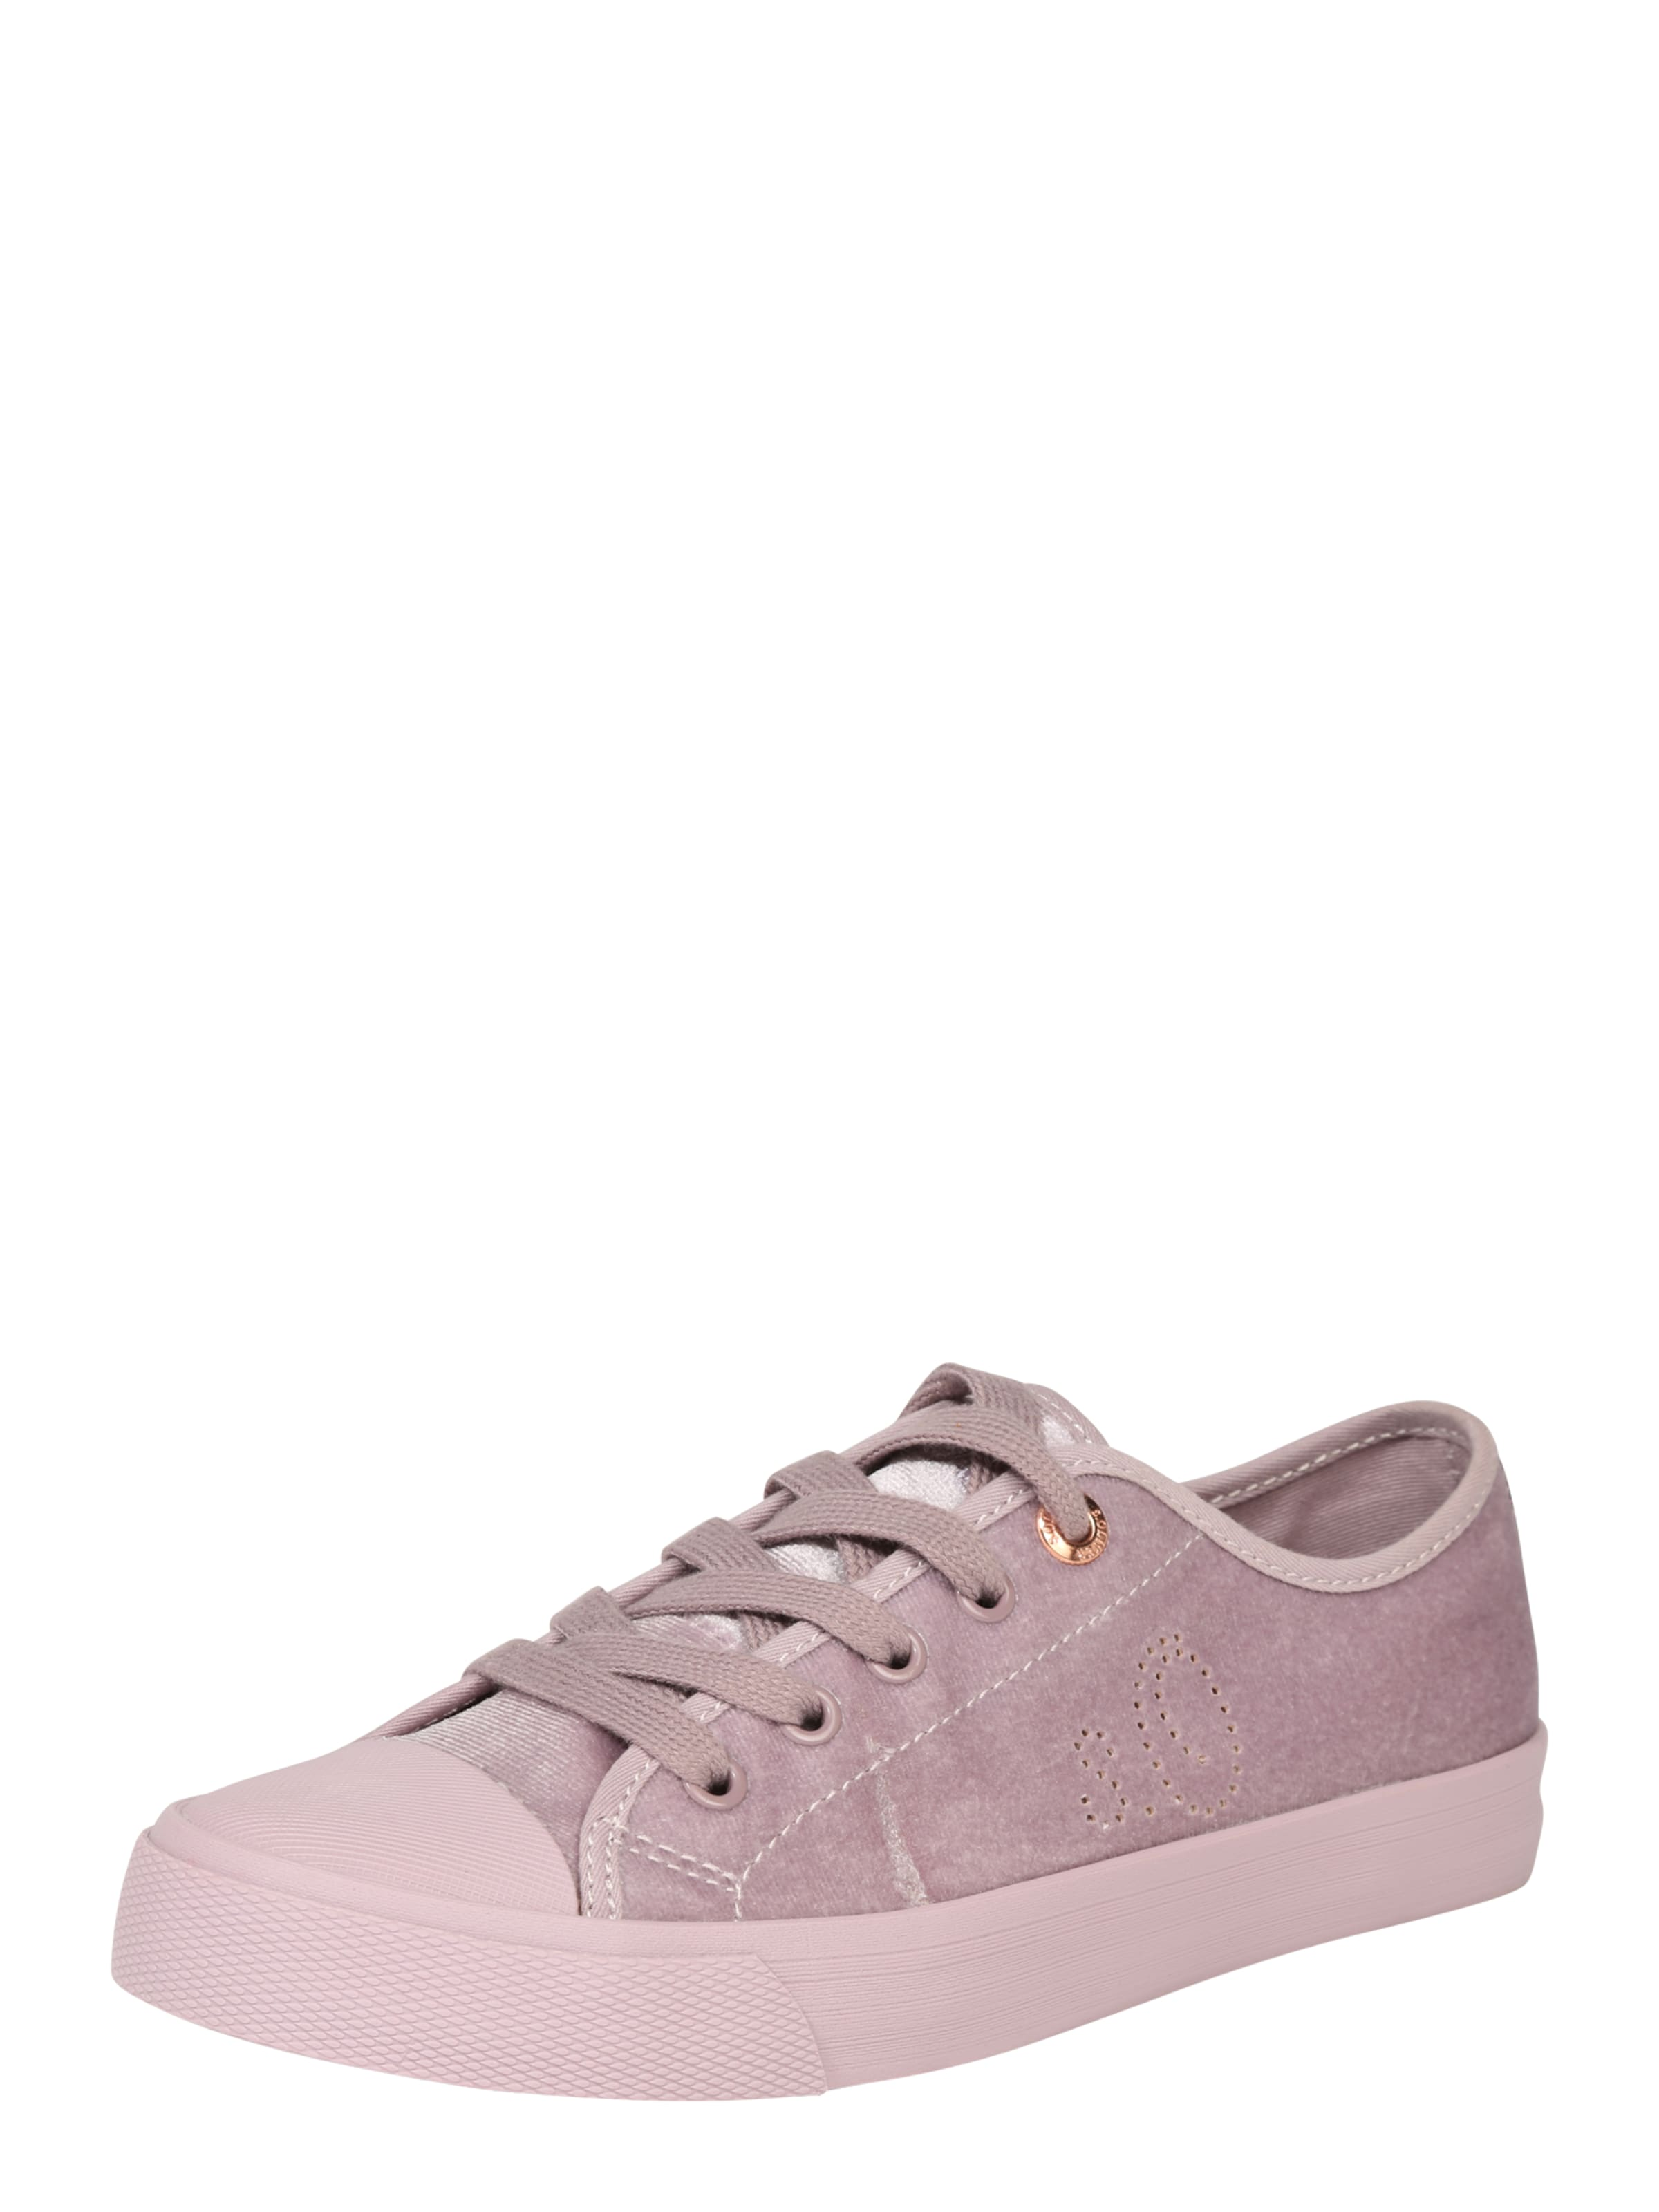 S.Oliver RED LABEL Sneaker im Samt-Look lila NG6h00h8dh